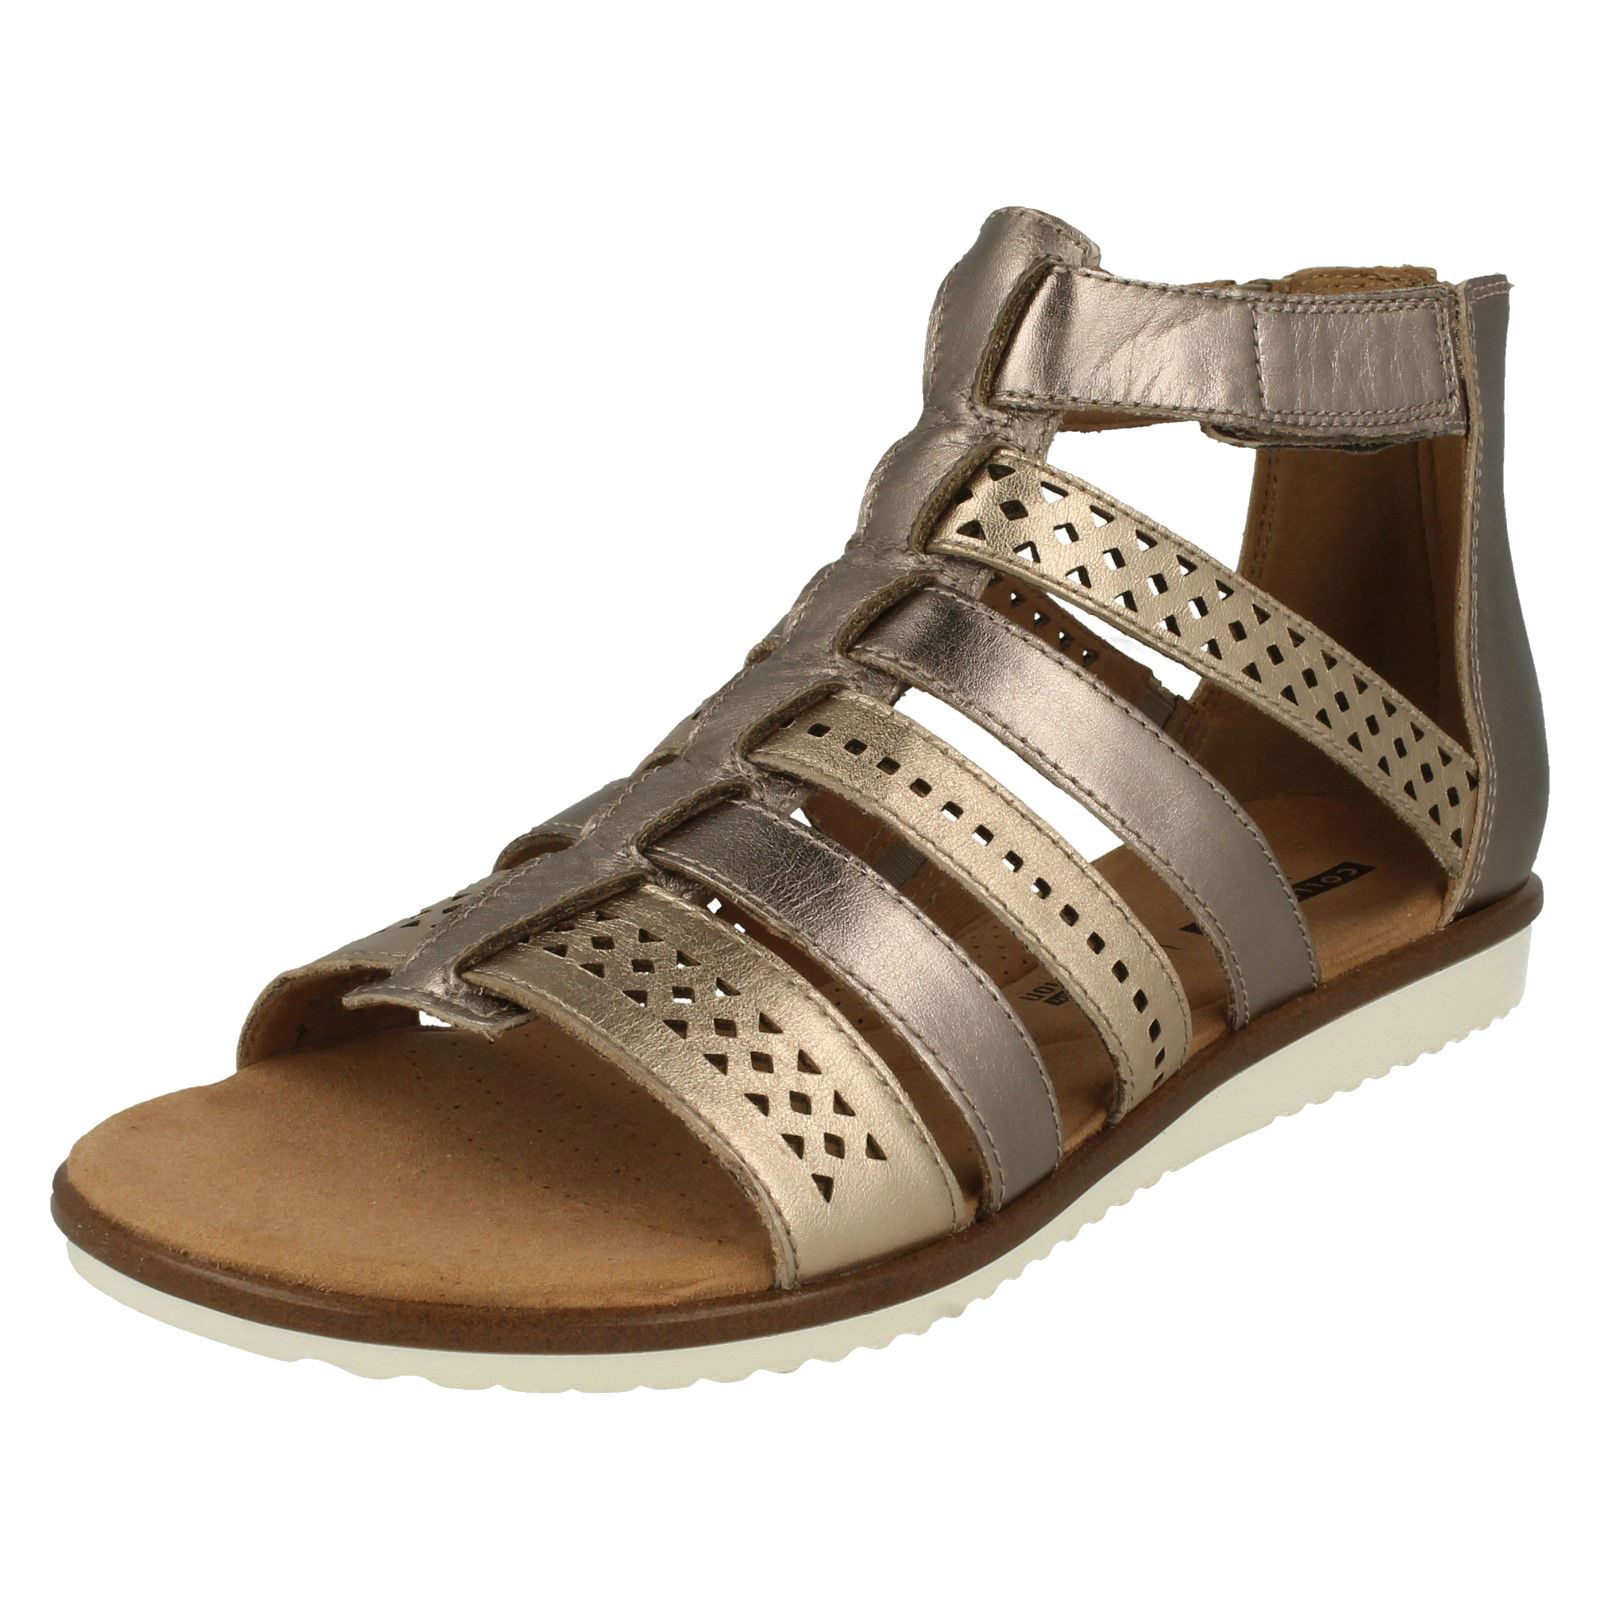 c5673070a52e Details about Ladies Clarks Kele Lotus Gladiator Sandals